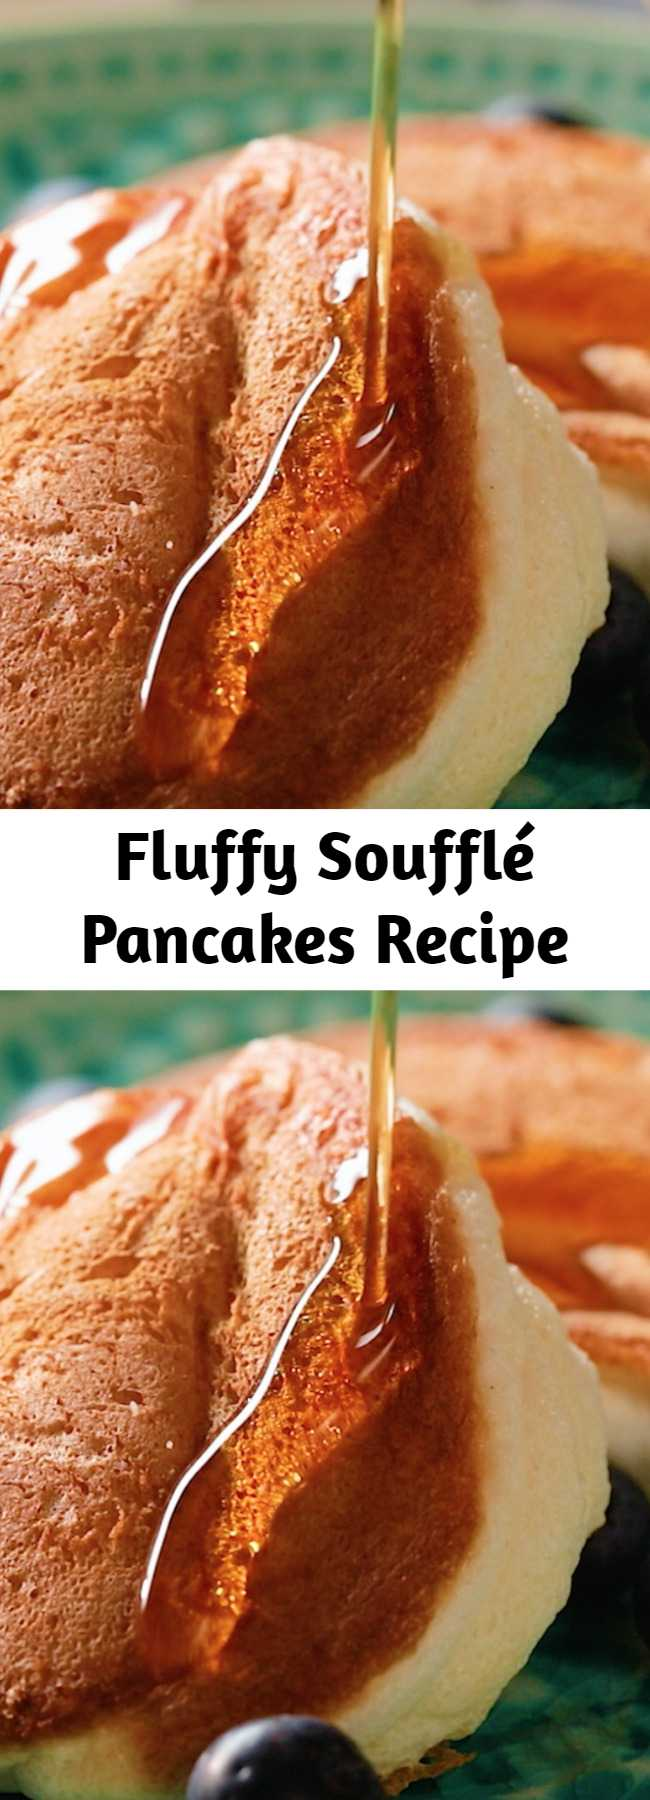 Fluffy Soufflé Pancakes Recipe - You've probably heard of Japanese pancakes. They're as fluffy as a cloud. We give you fluffy soufflé pancakes, a recipe you will never get over. Not only are they the tastiest, but they're also light as a feather! We won't blame you for topping them with bananas or strawberries.